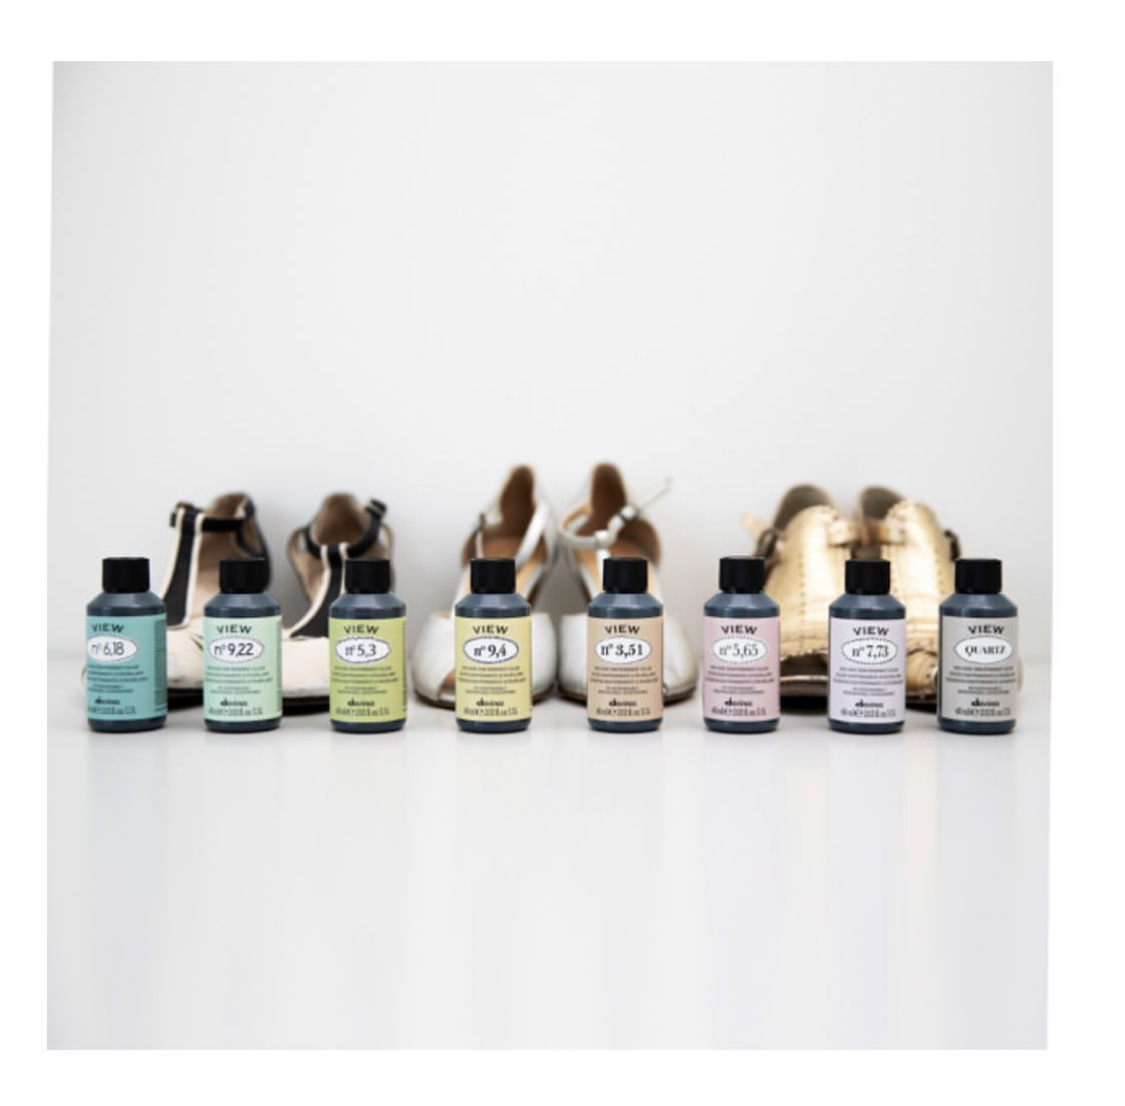 May 2019 - Launching Davines VIEW, the incredible new high shine & versatile semi permanent colour range.This incredible acidic colour allows you to change your hair as often as you can change your point of VIEW.